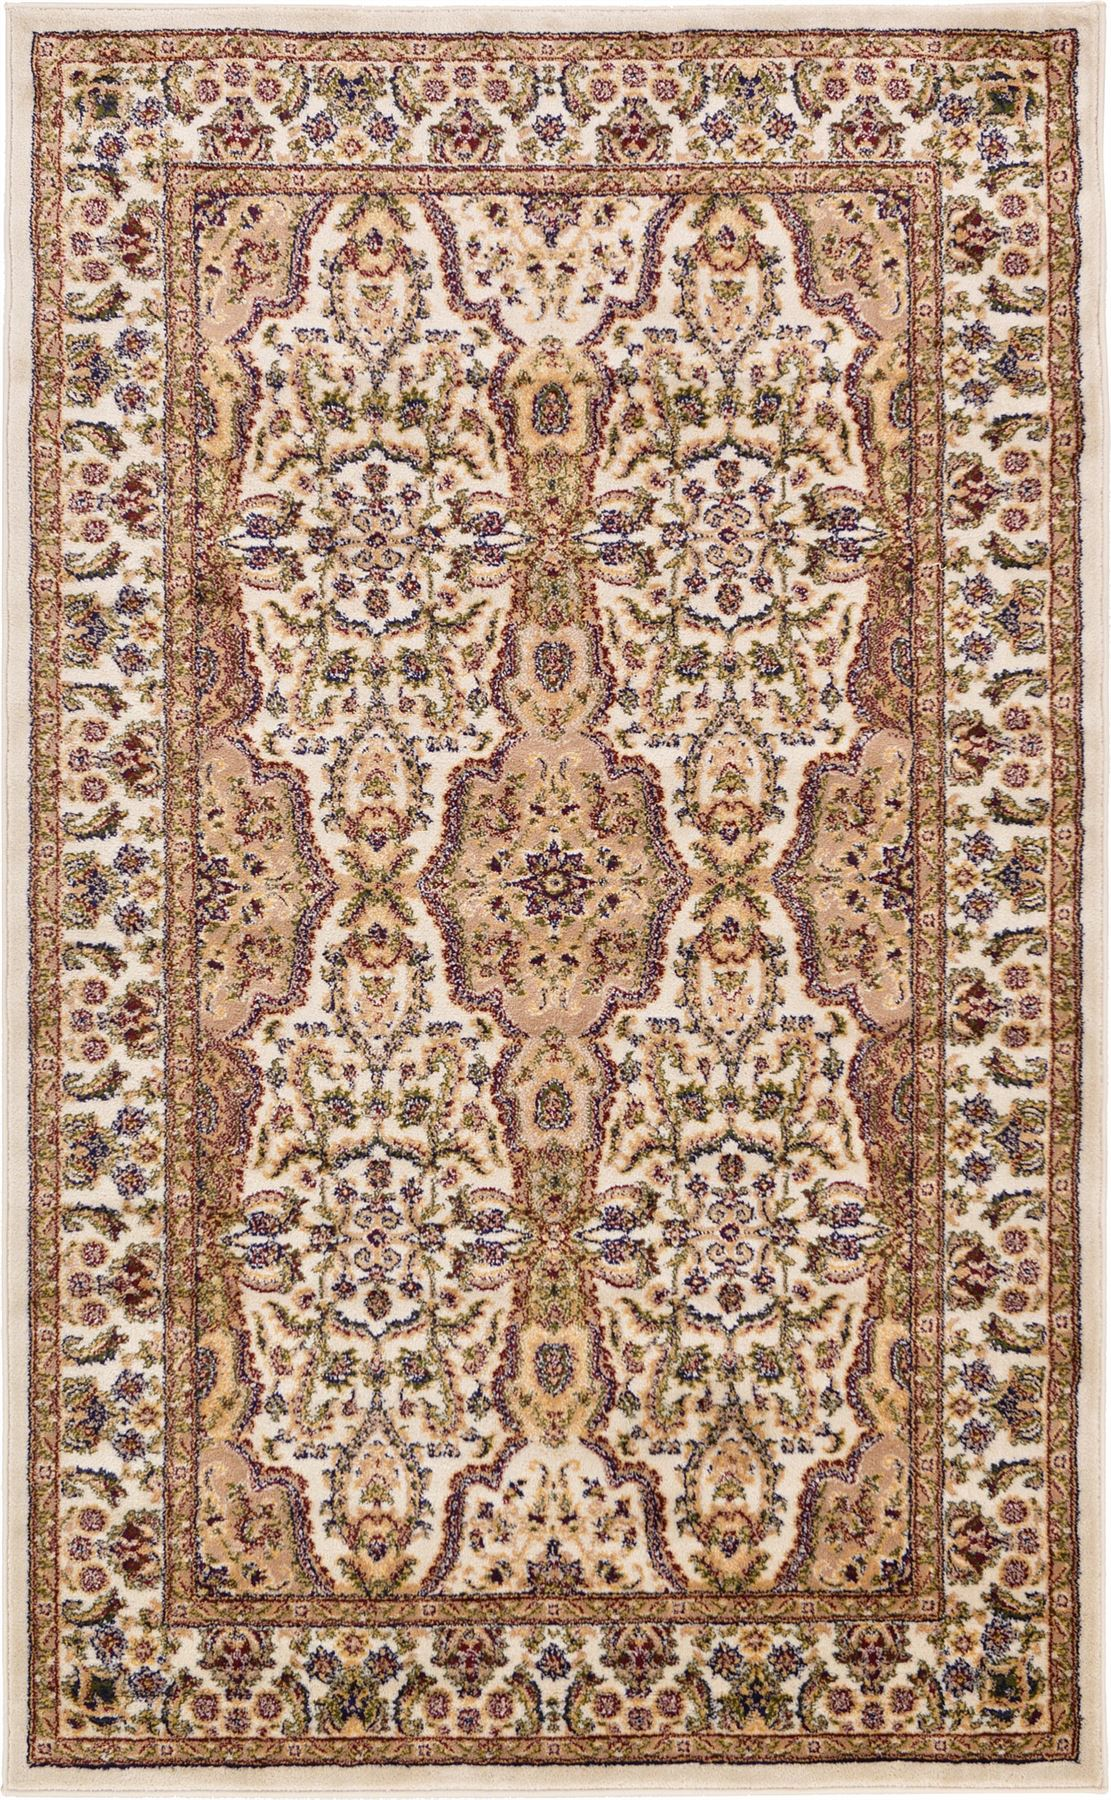 Traditional persian design rug unique carpets different for Area rug sizes